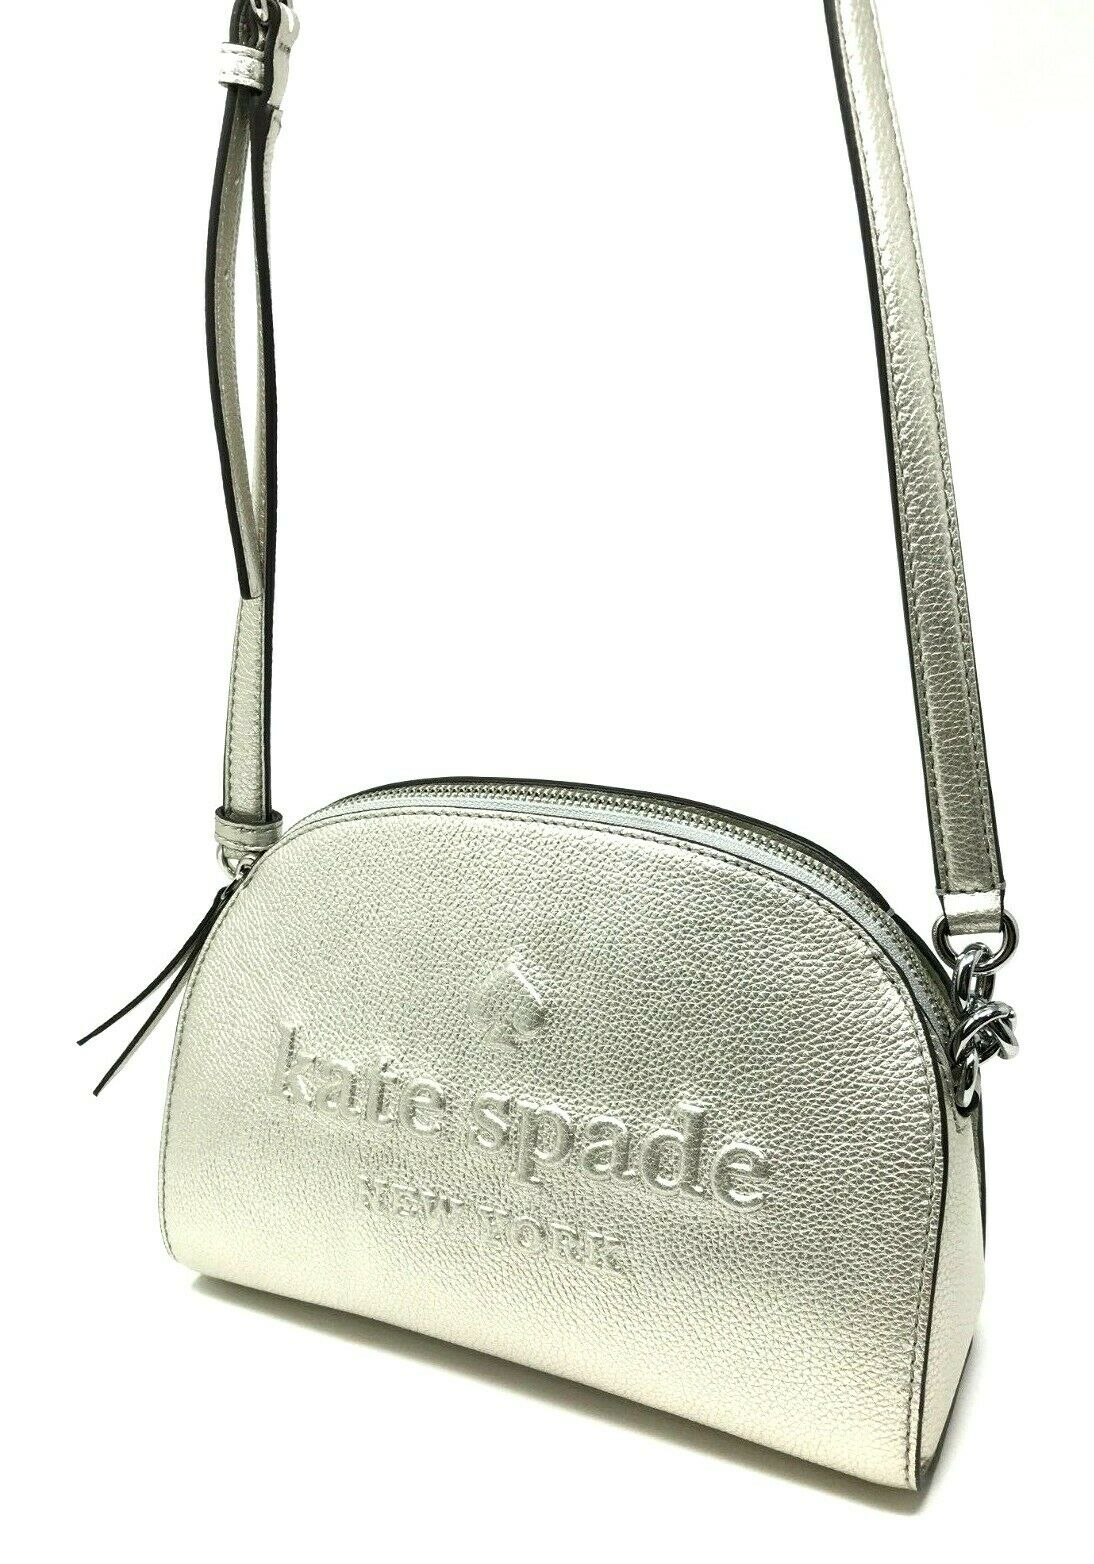 Kate Spade Larchmont Avenue Logo Tori Crossbody Bag Metallic Silver WKRU5728 $229